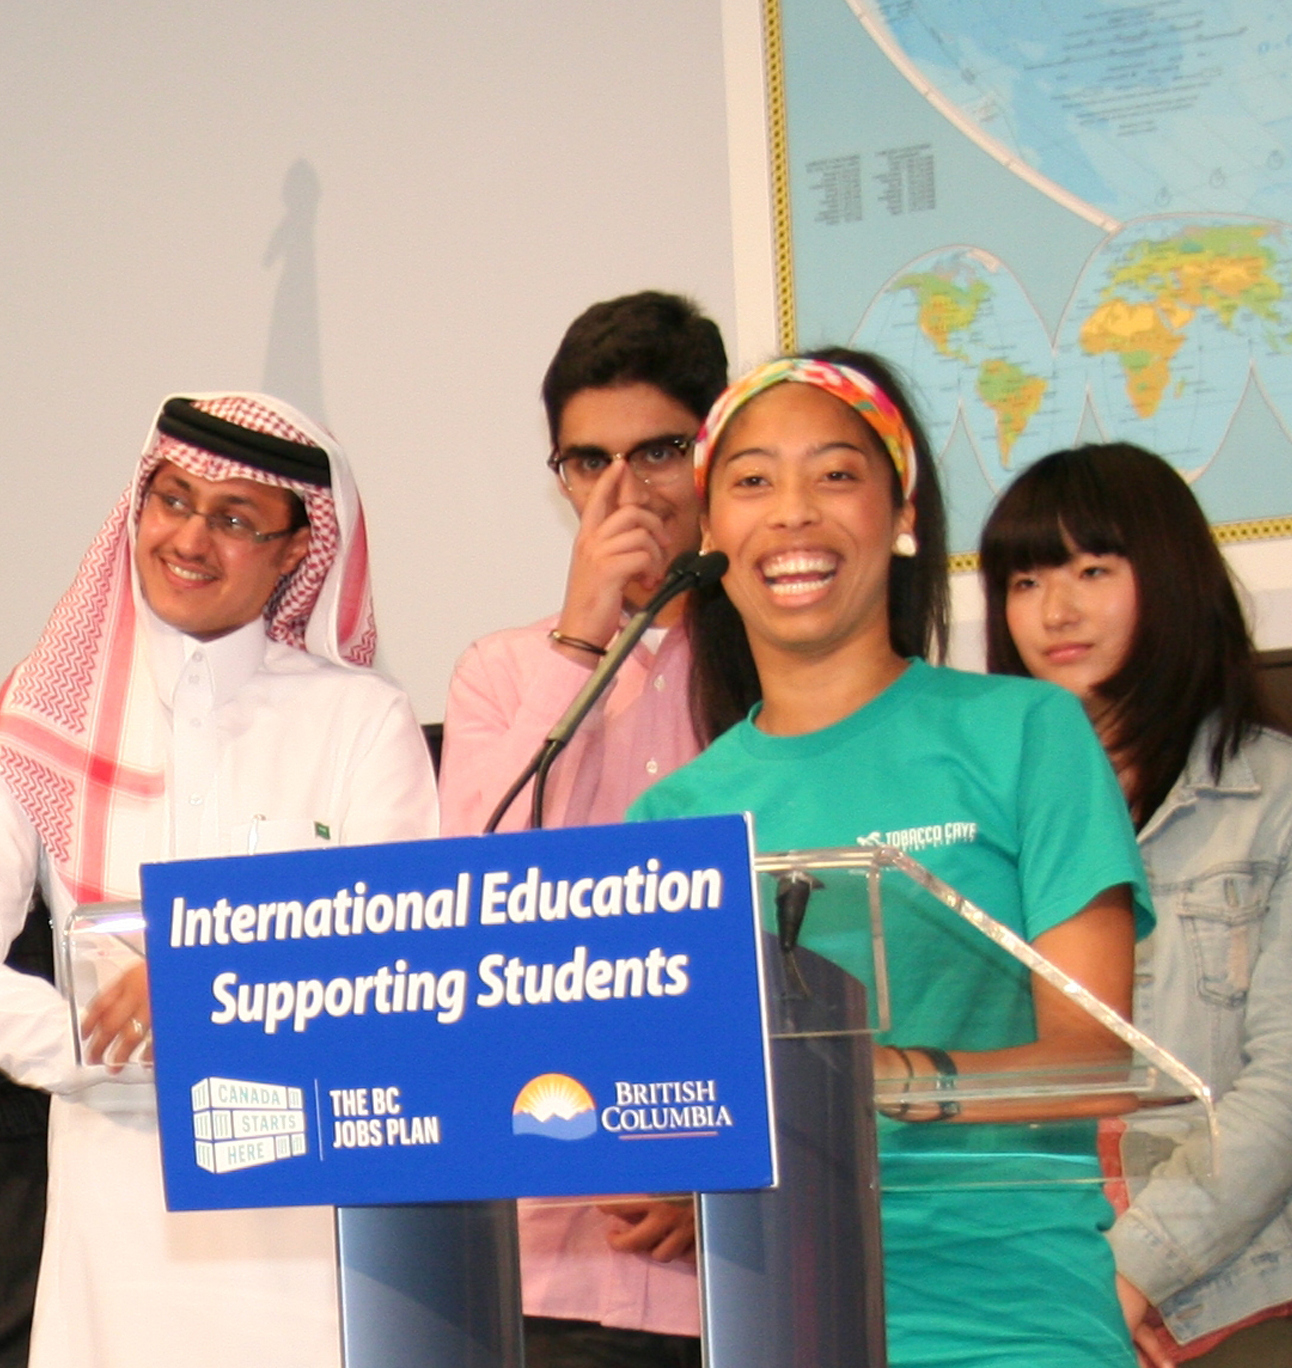 Vancouver Island University student Angeline de Bruyns, a recipient of a One World international scholarship,  speaks at the launch of the International Education Stragegy during which an additional $2 million was announced for the international scholarship program.